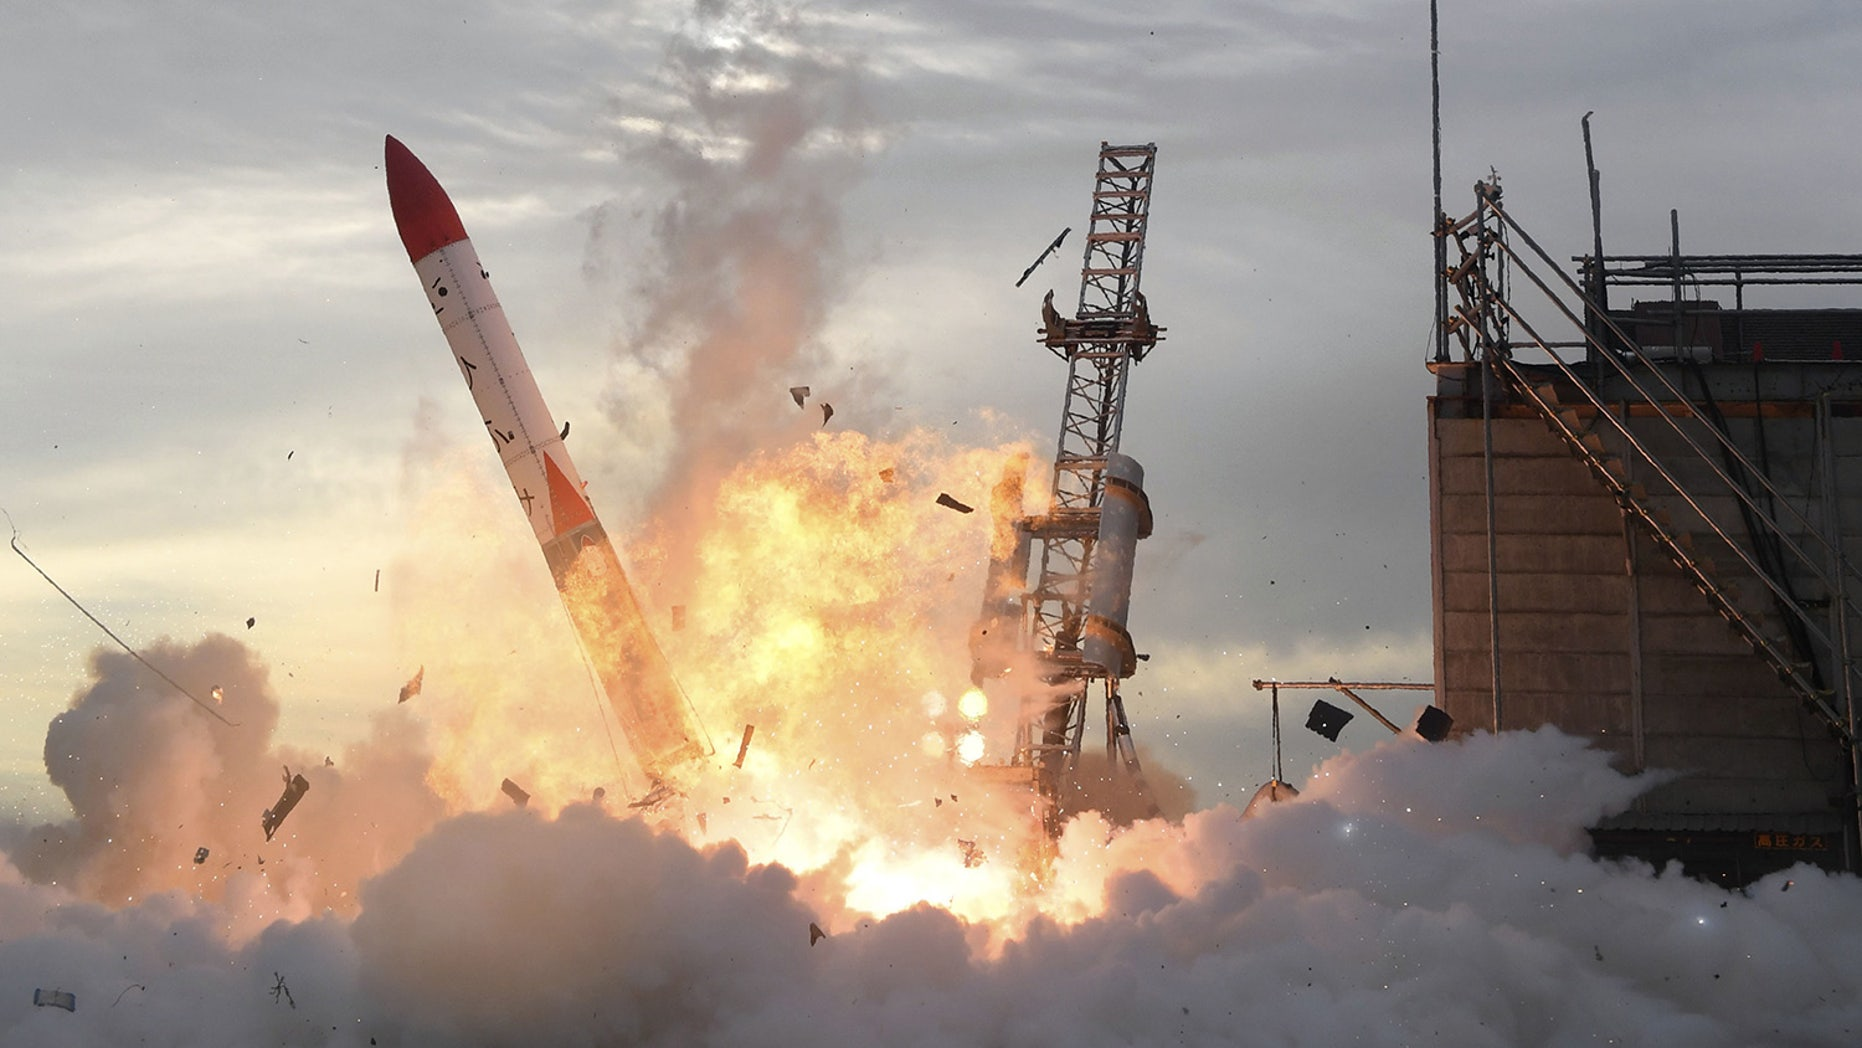 A private Japanese rocket bursts into flames as it crashes to Earth after a failed launch attempt in Taiki, a town on Japan's northernmost island of Hokkaido, on June 30, 2018. The rocket, Momo-2, would have been the first privately built Japanese rocket to reach outer space.